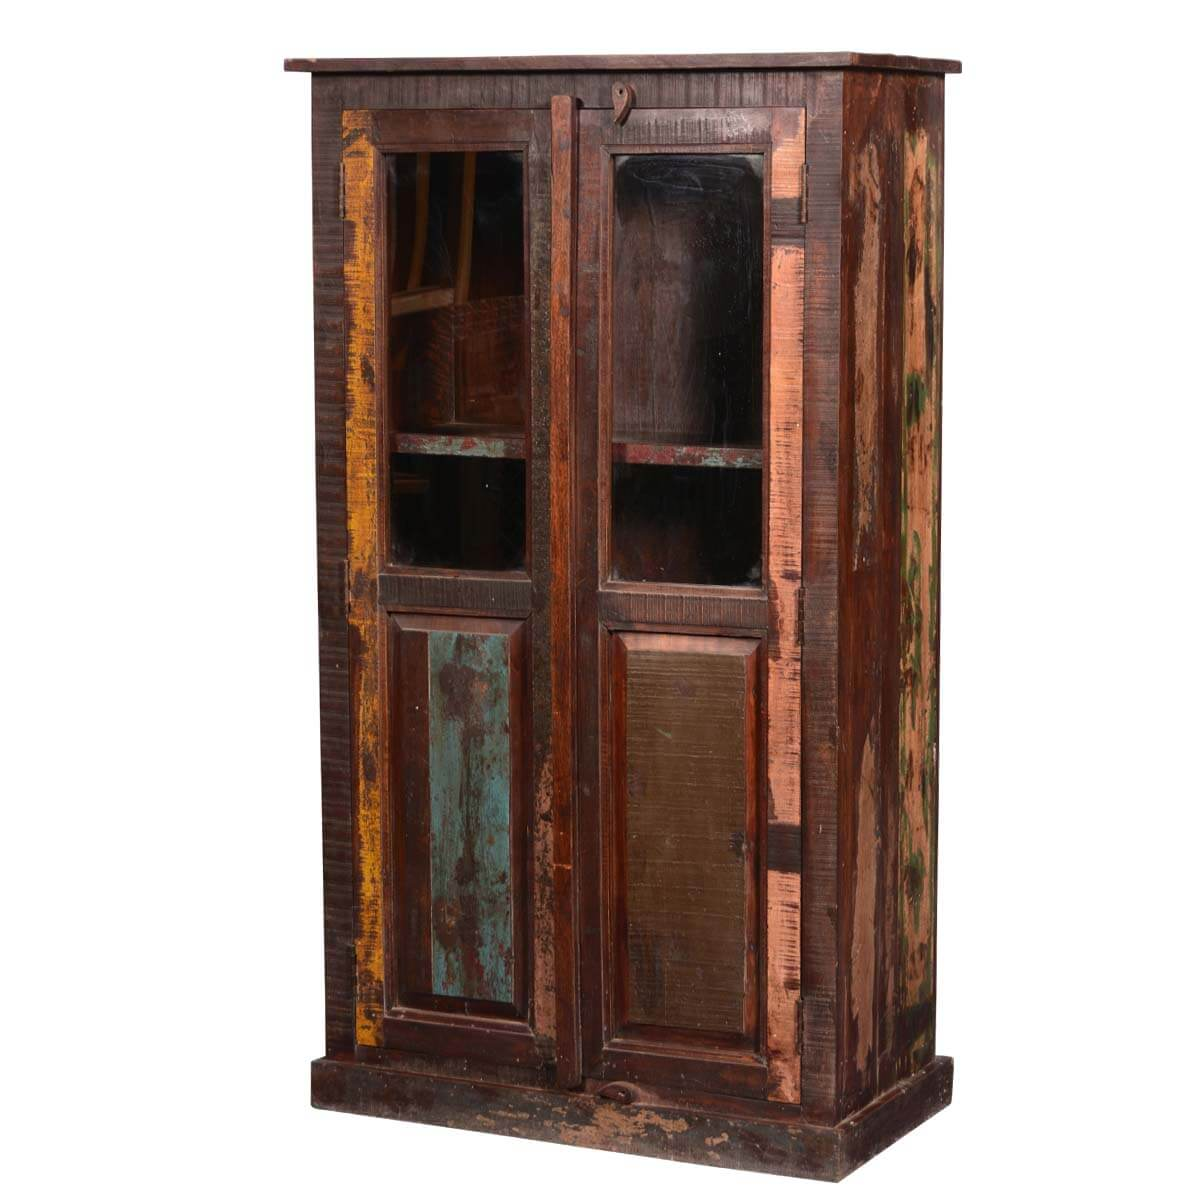 Appalachian Rustic Reclaimed Wood Armoire Display Cabinet